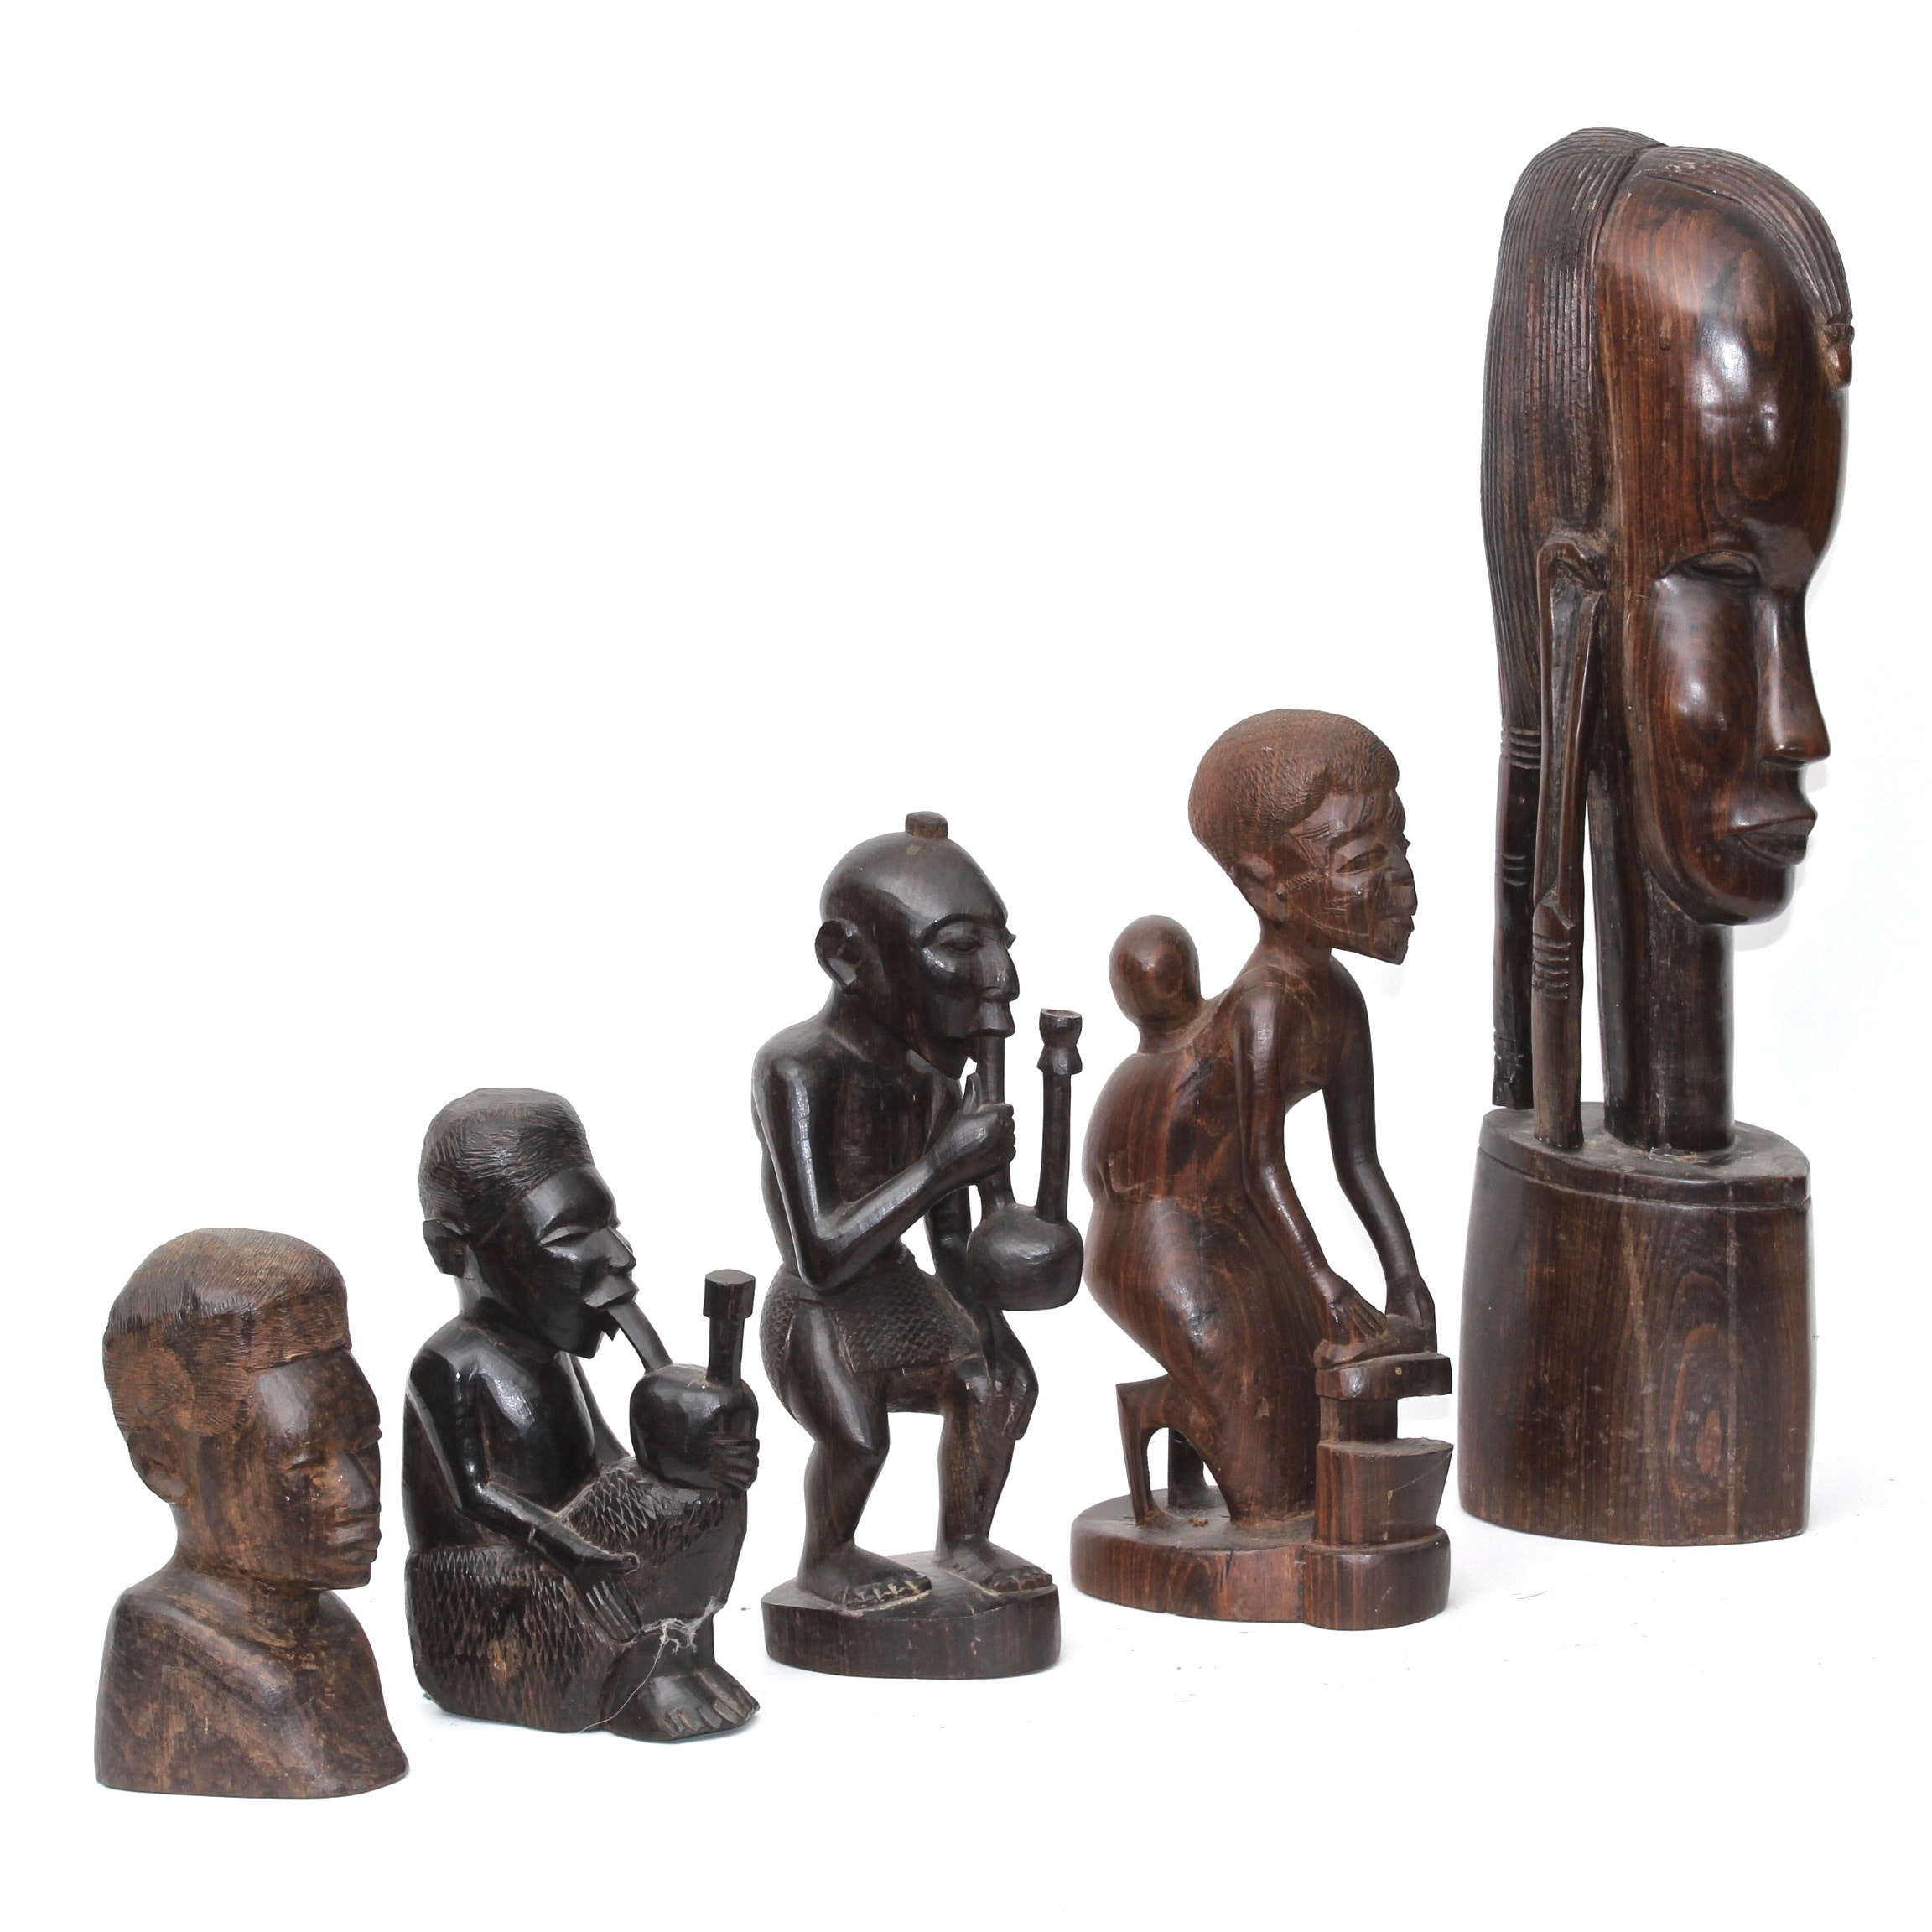 East African Carved Wood Sculptures